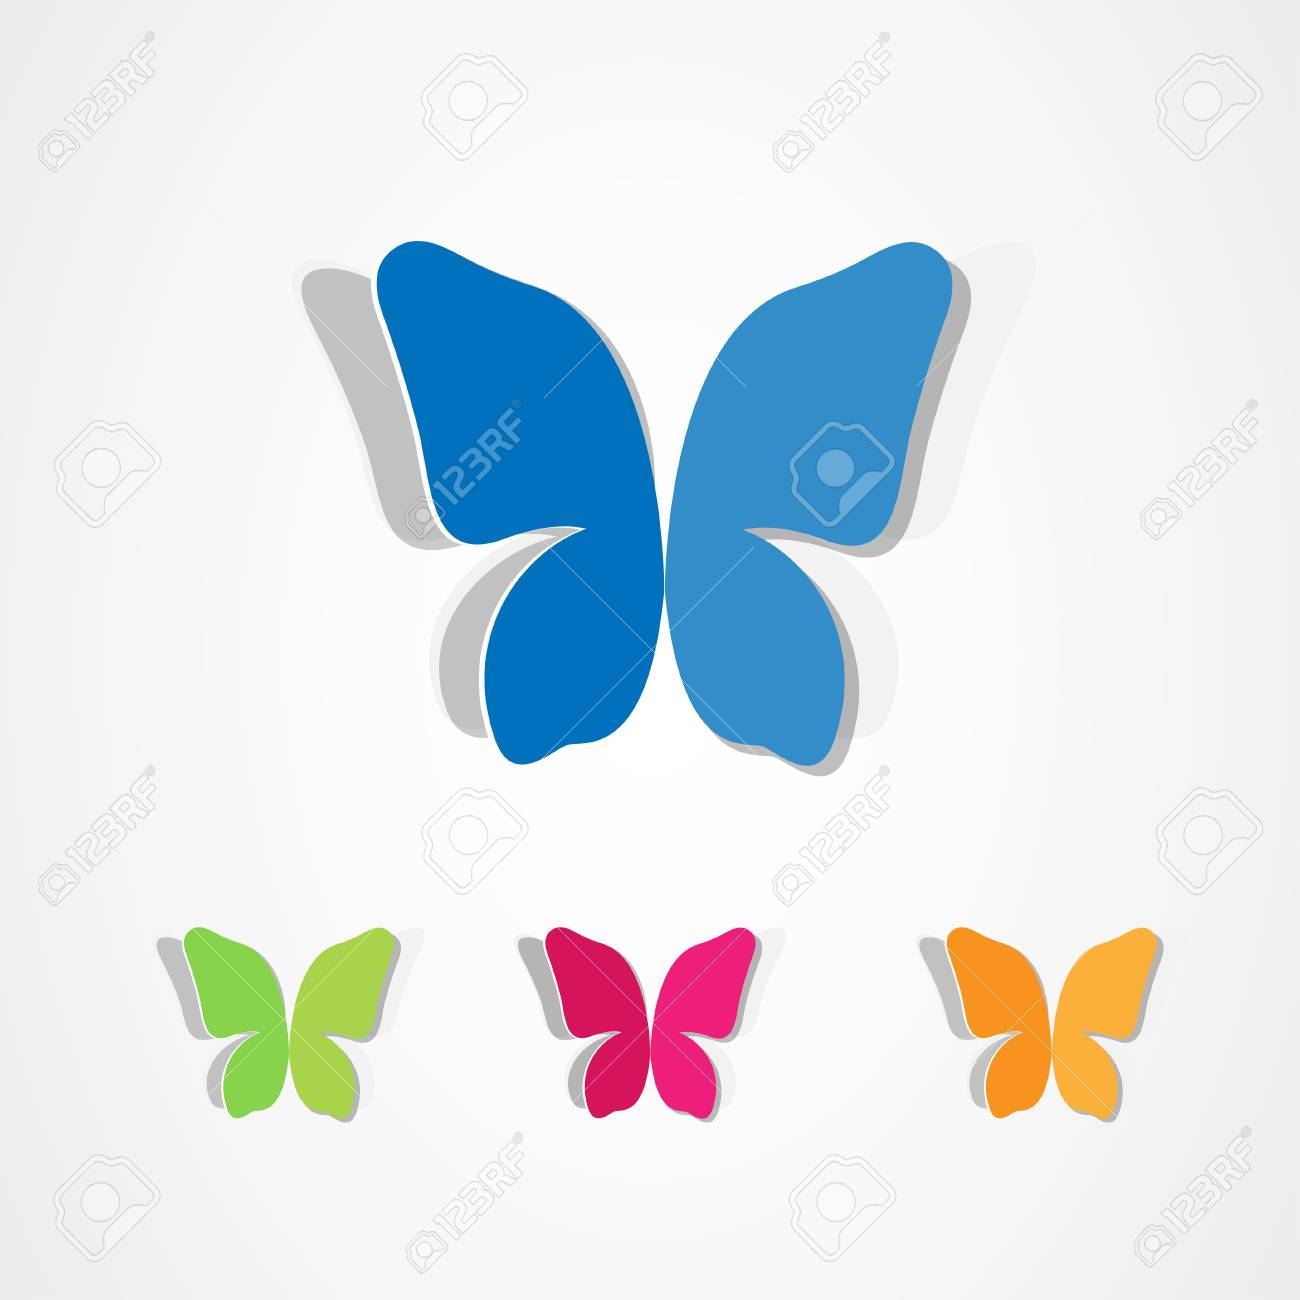 Butterfly icons set royalty free cliparts vectors and stock butterfly icons set stock vector 33881426 biocorpaavc Image collections